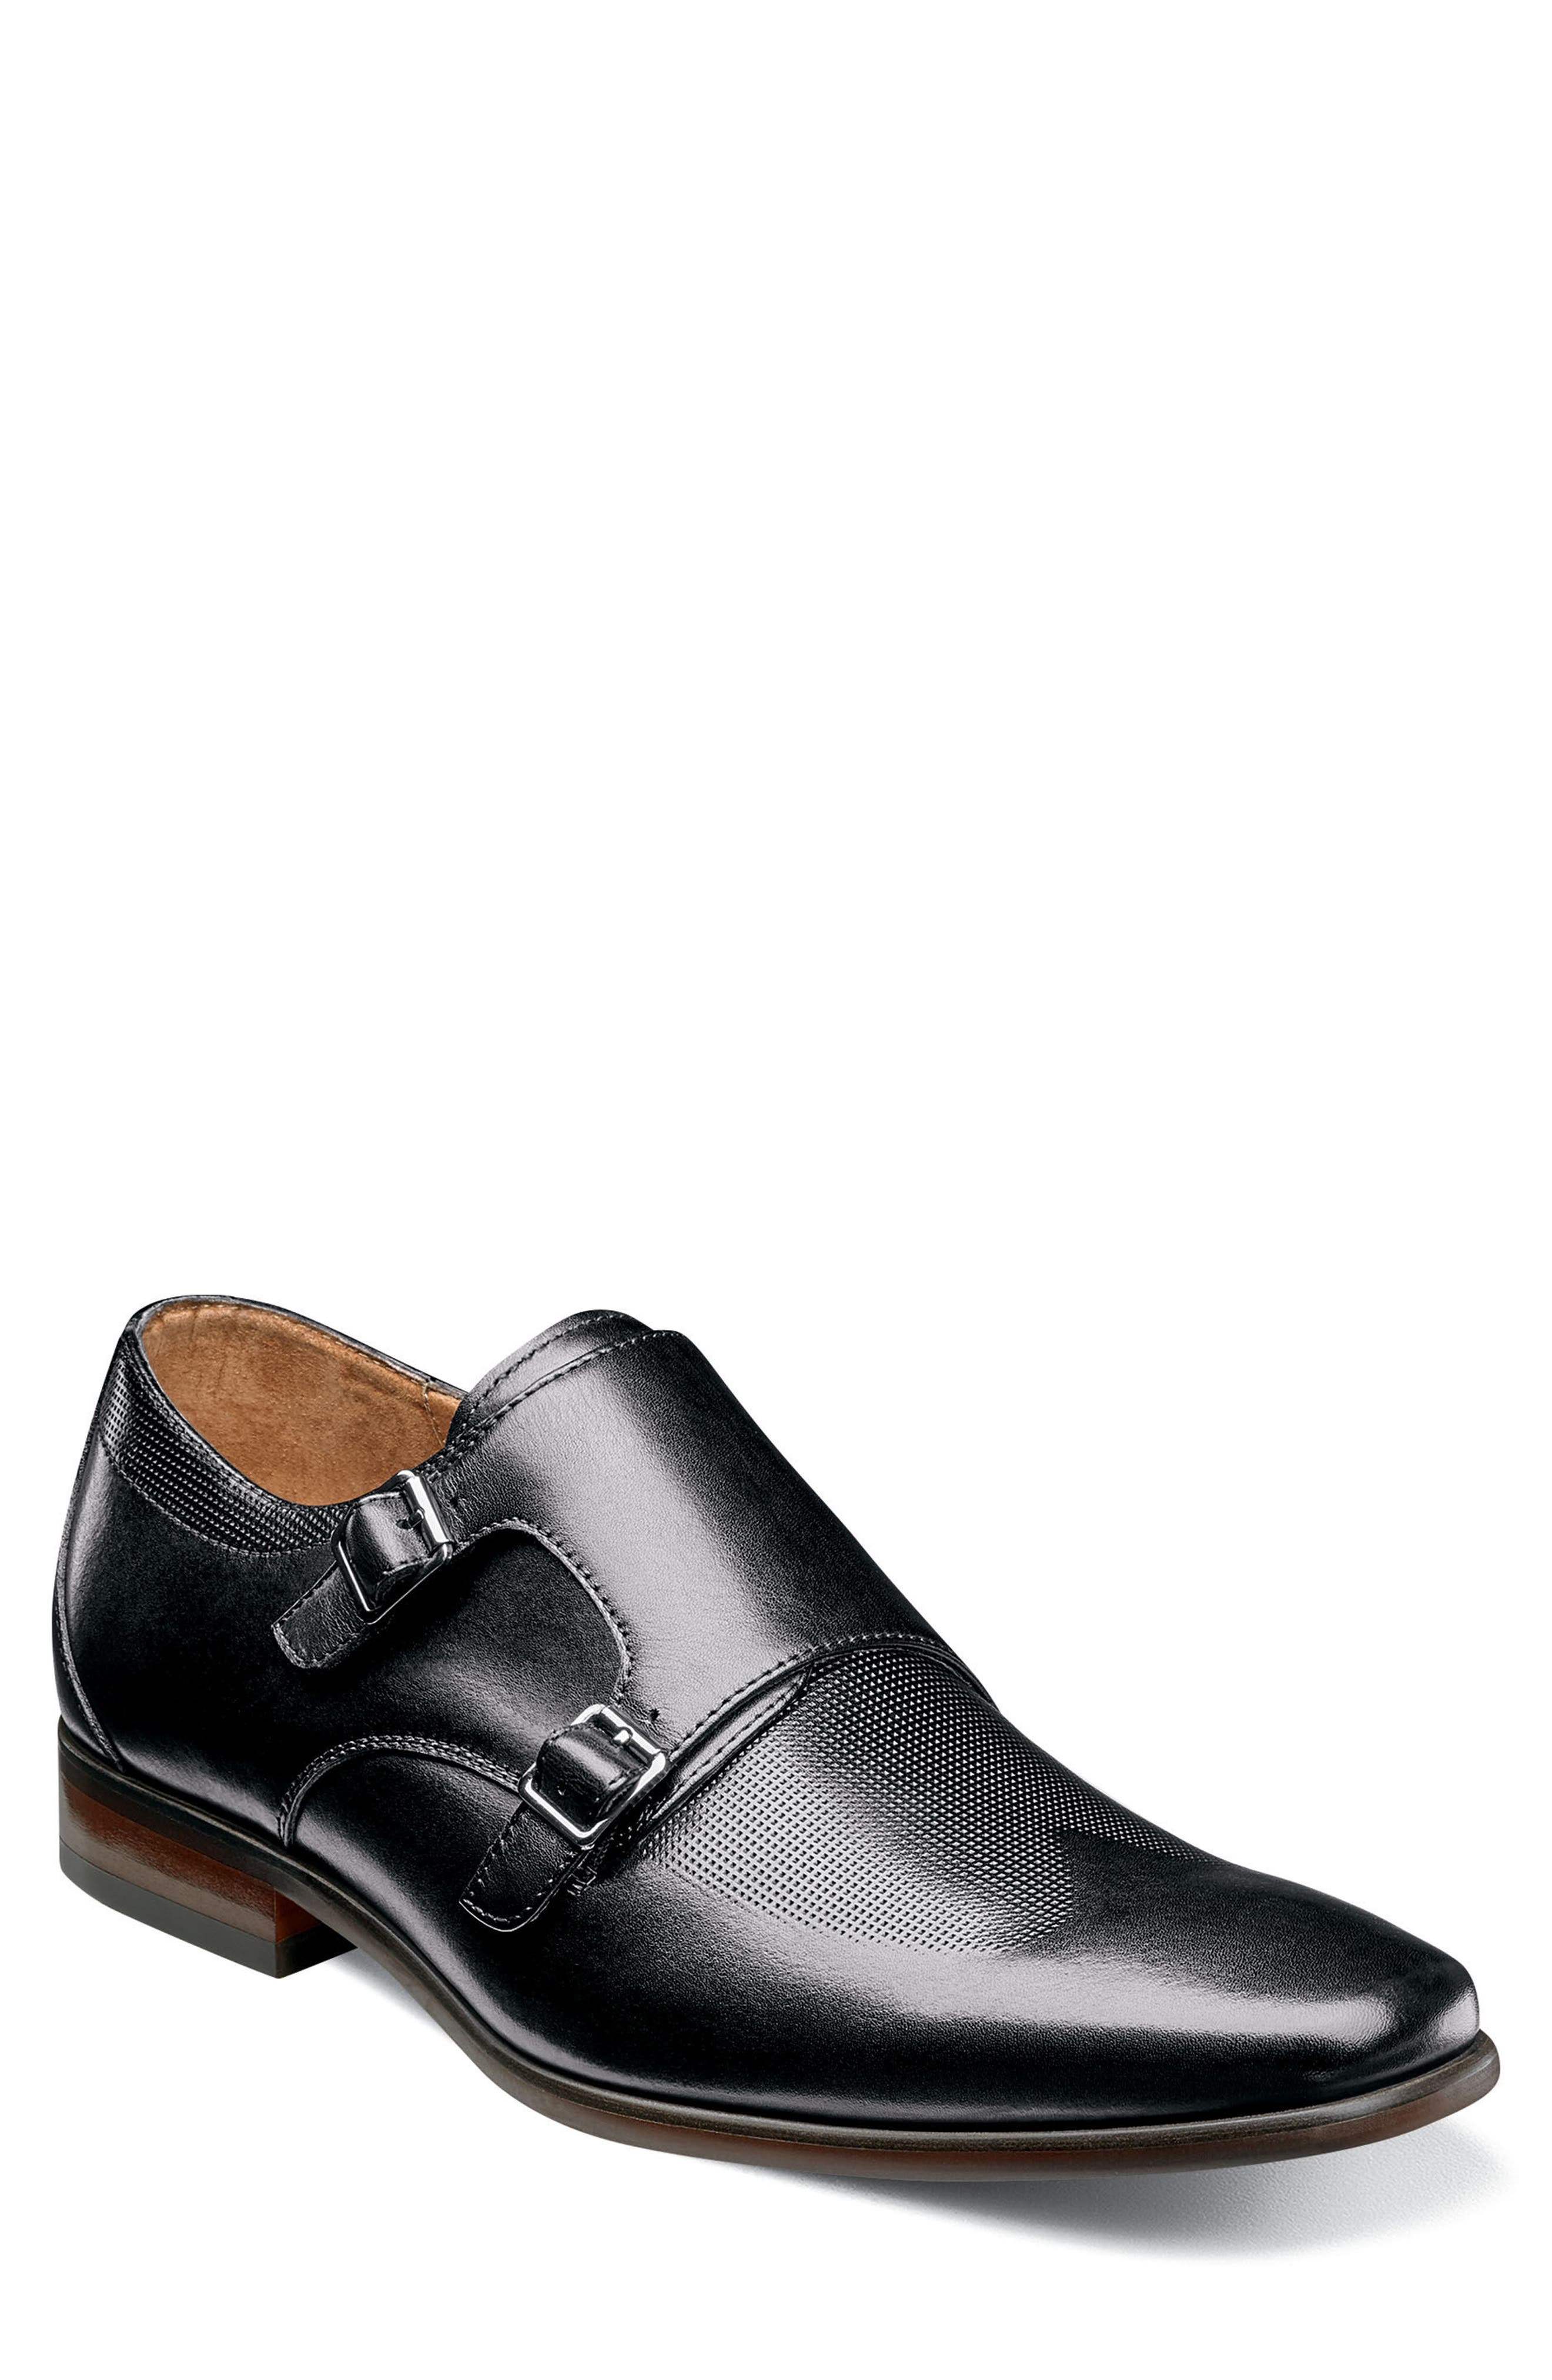 Postino Textured Double Strap Monk Shoe,                         Main,                         color, BLACK LEATHER